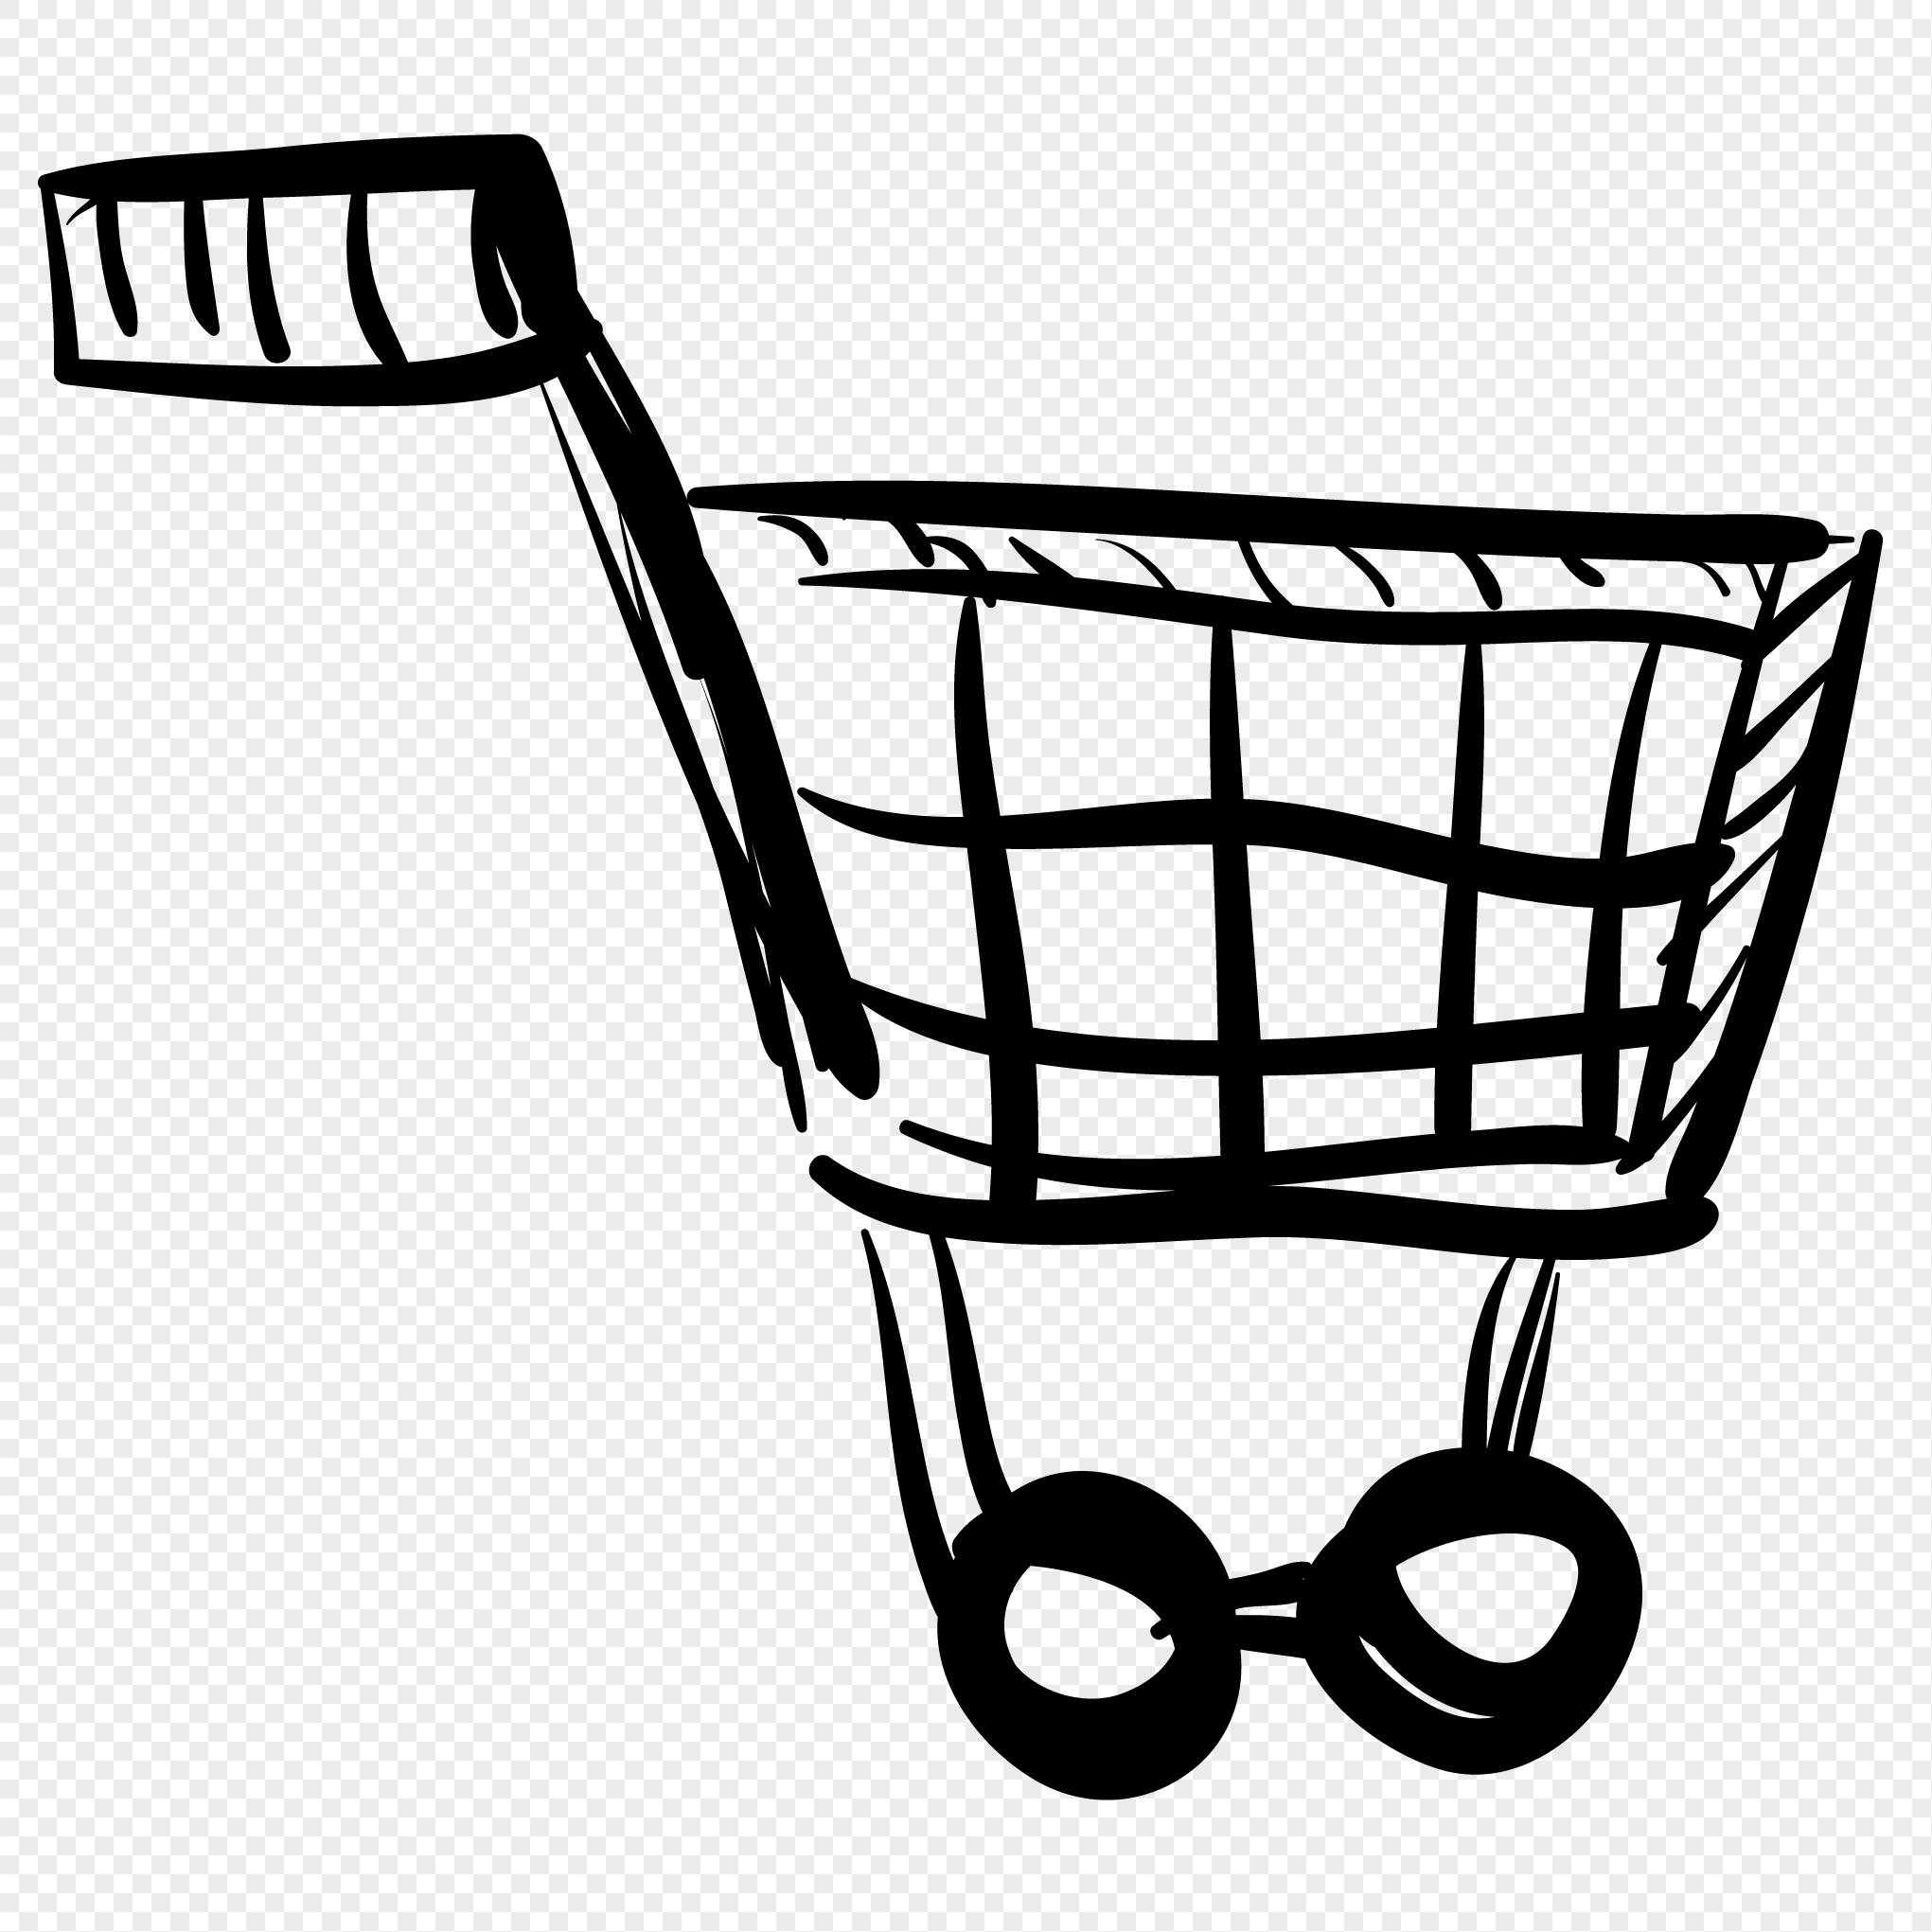 2041x2041 Shopping Cart Vector Image Picture 400315760 Free Download